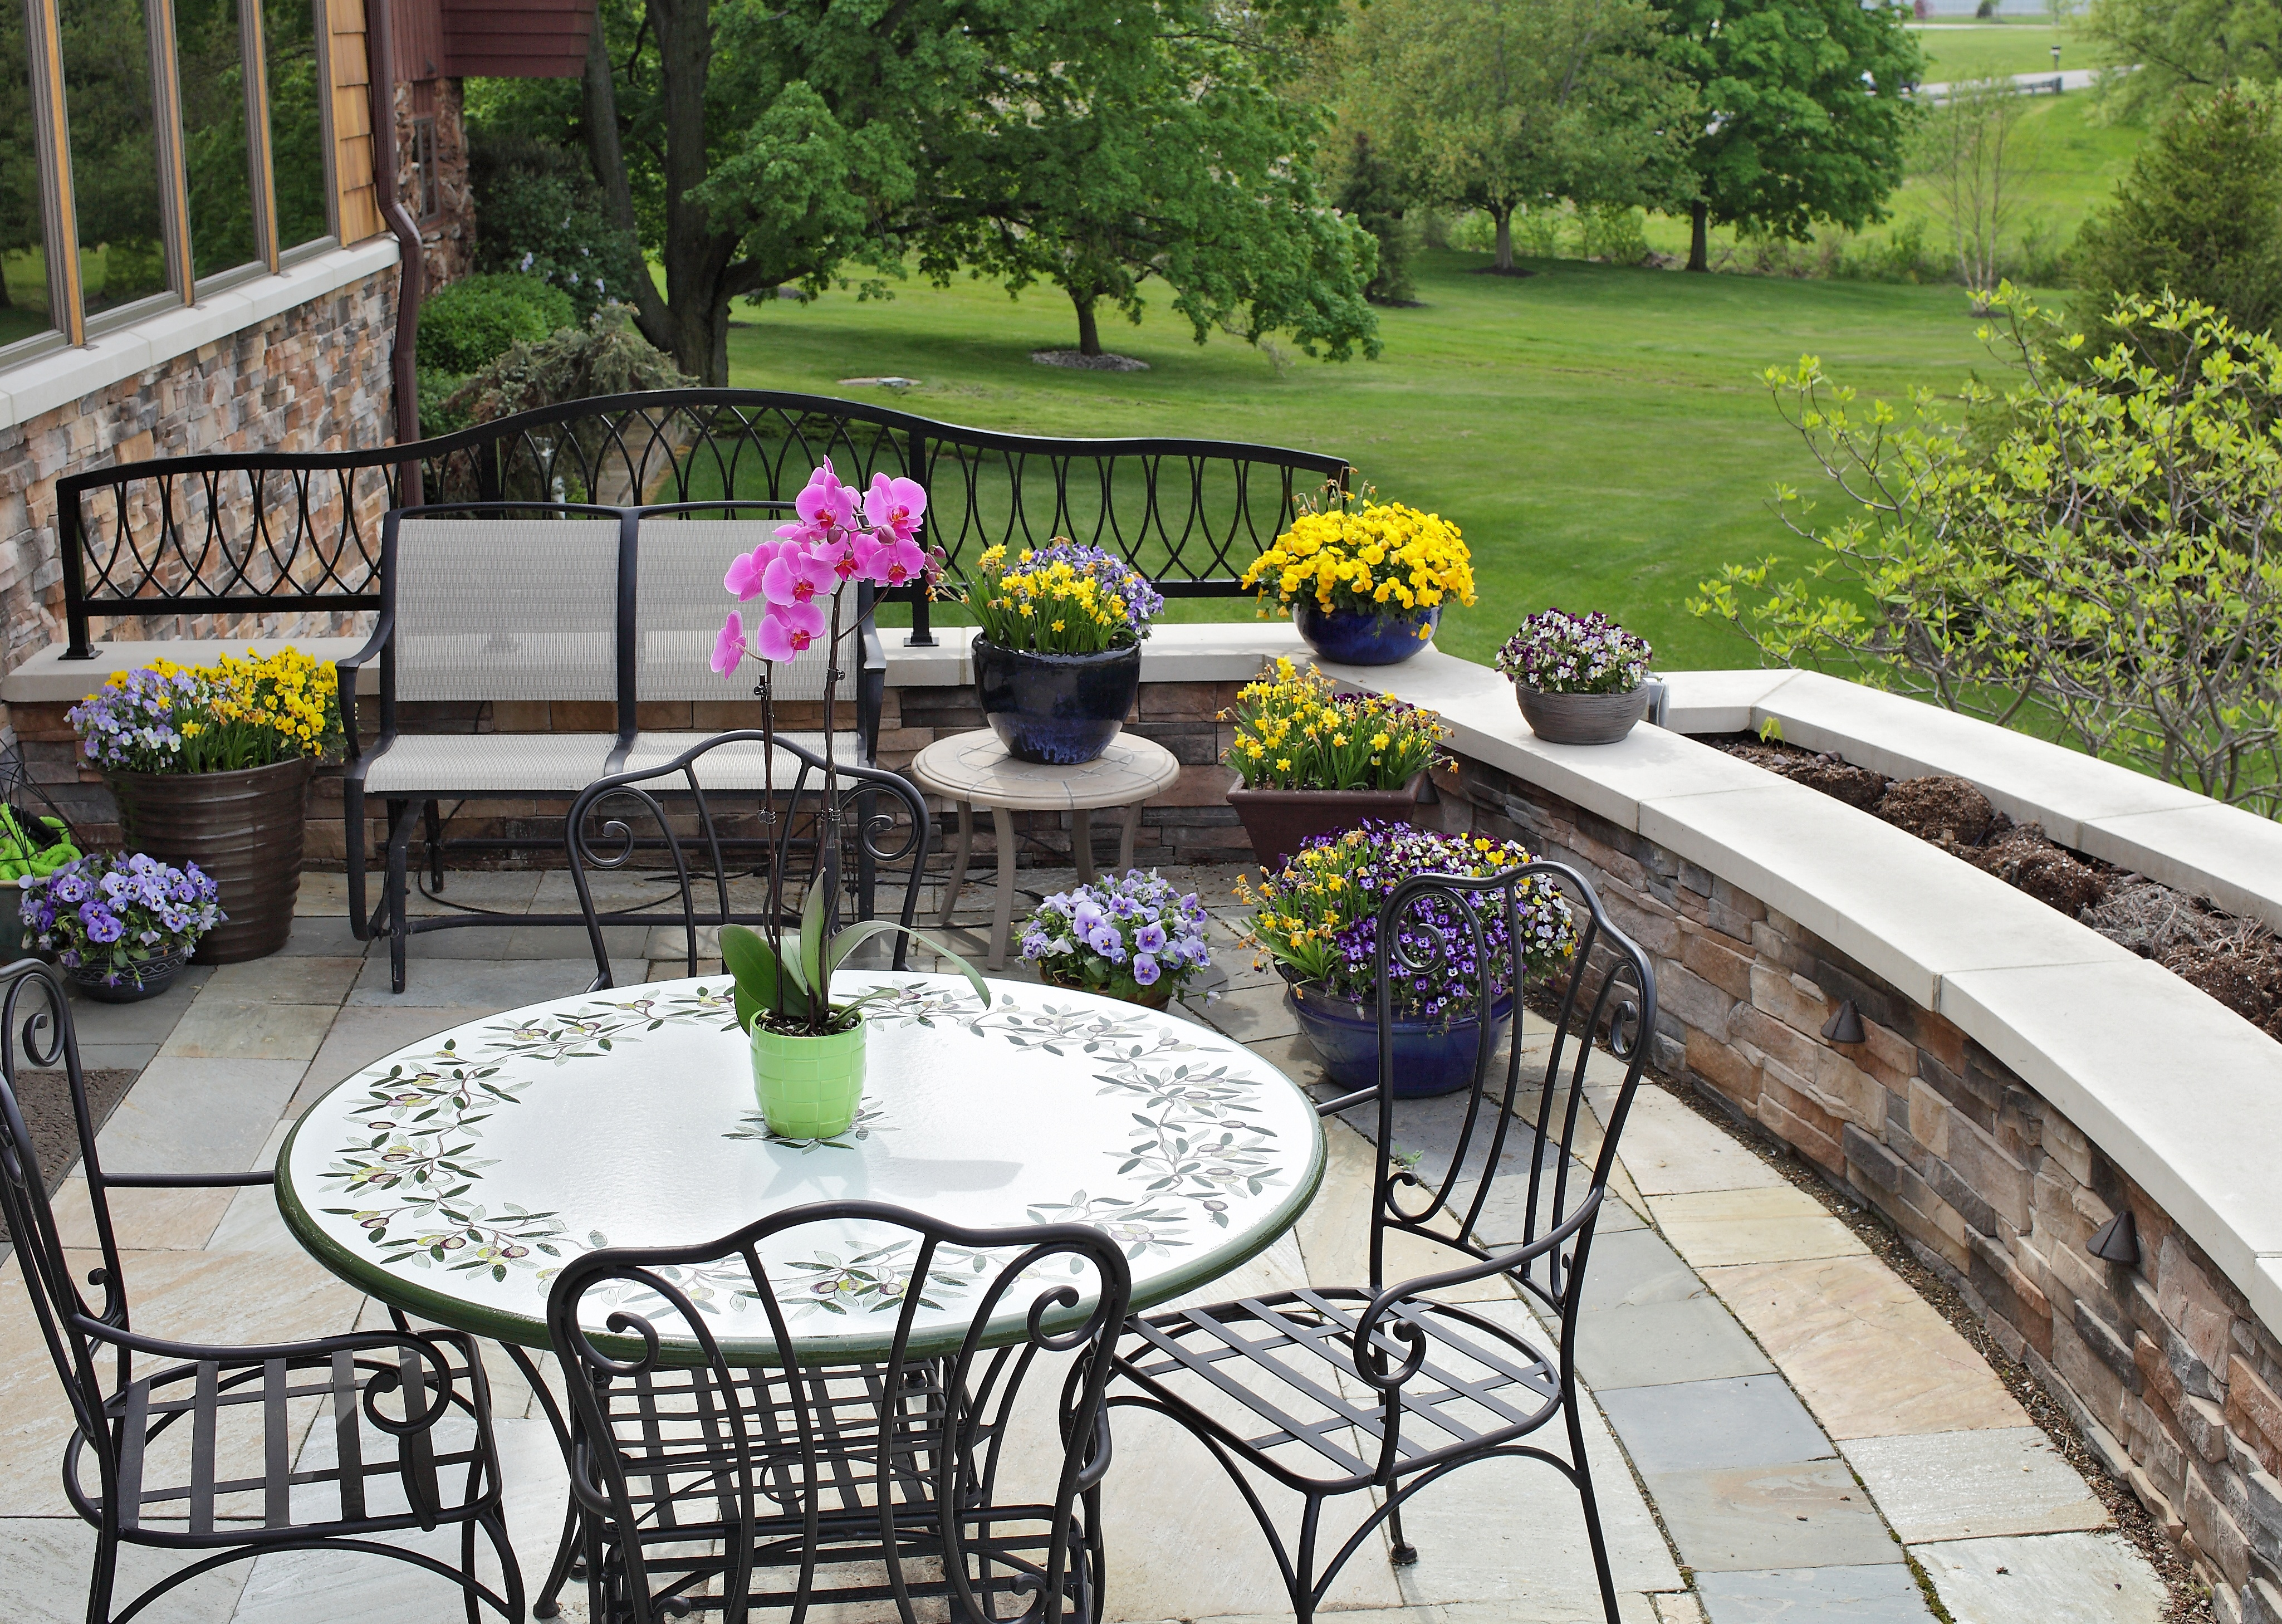 Summer Decorating Ideas: Indoor Plants That Add Flair to Your Backyard